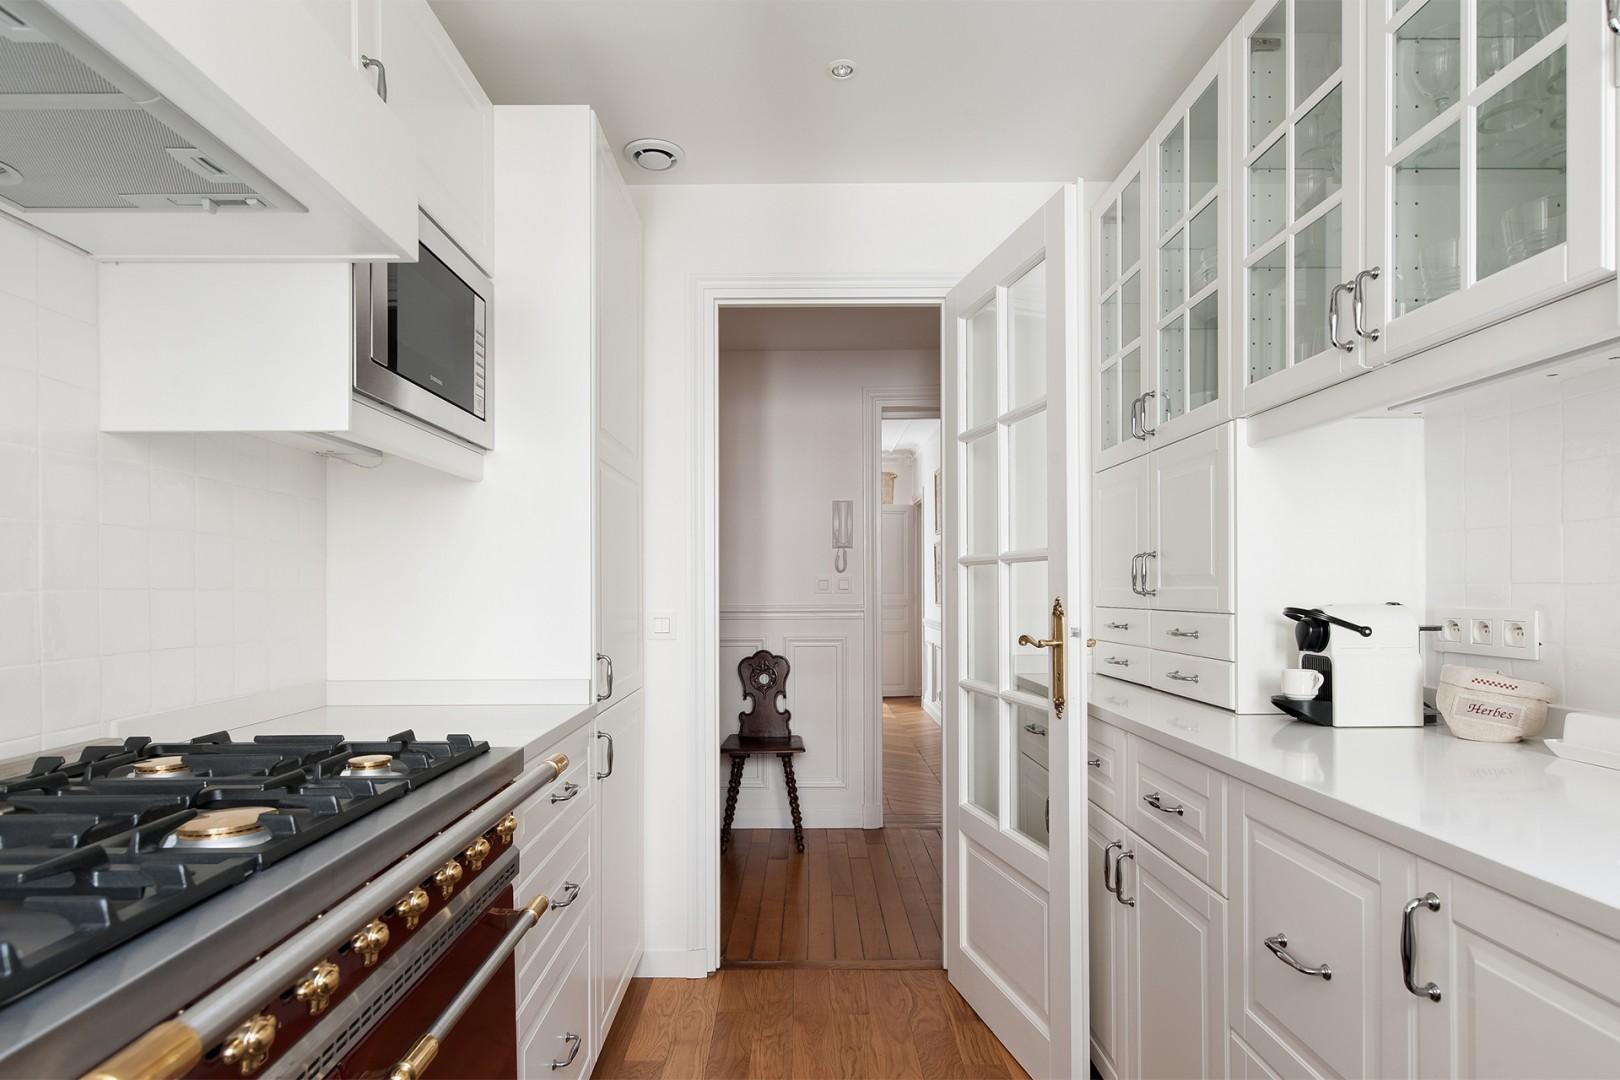 The kitchen features a vintage-style gas stove top and oven.